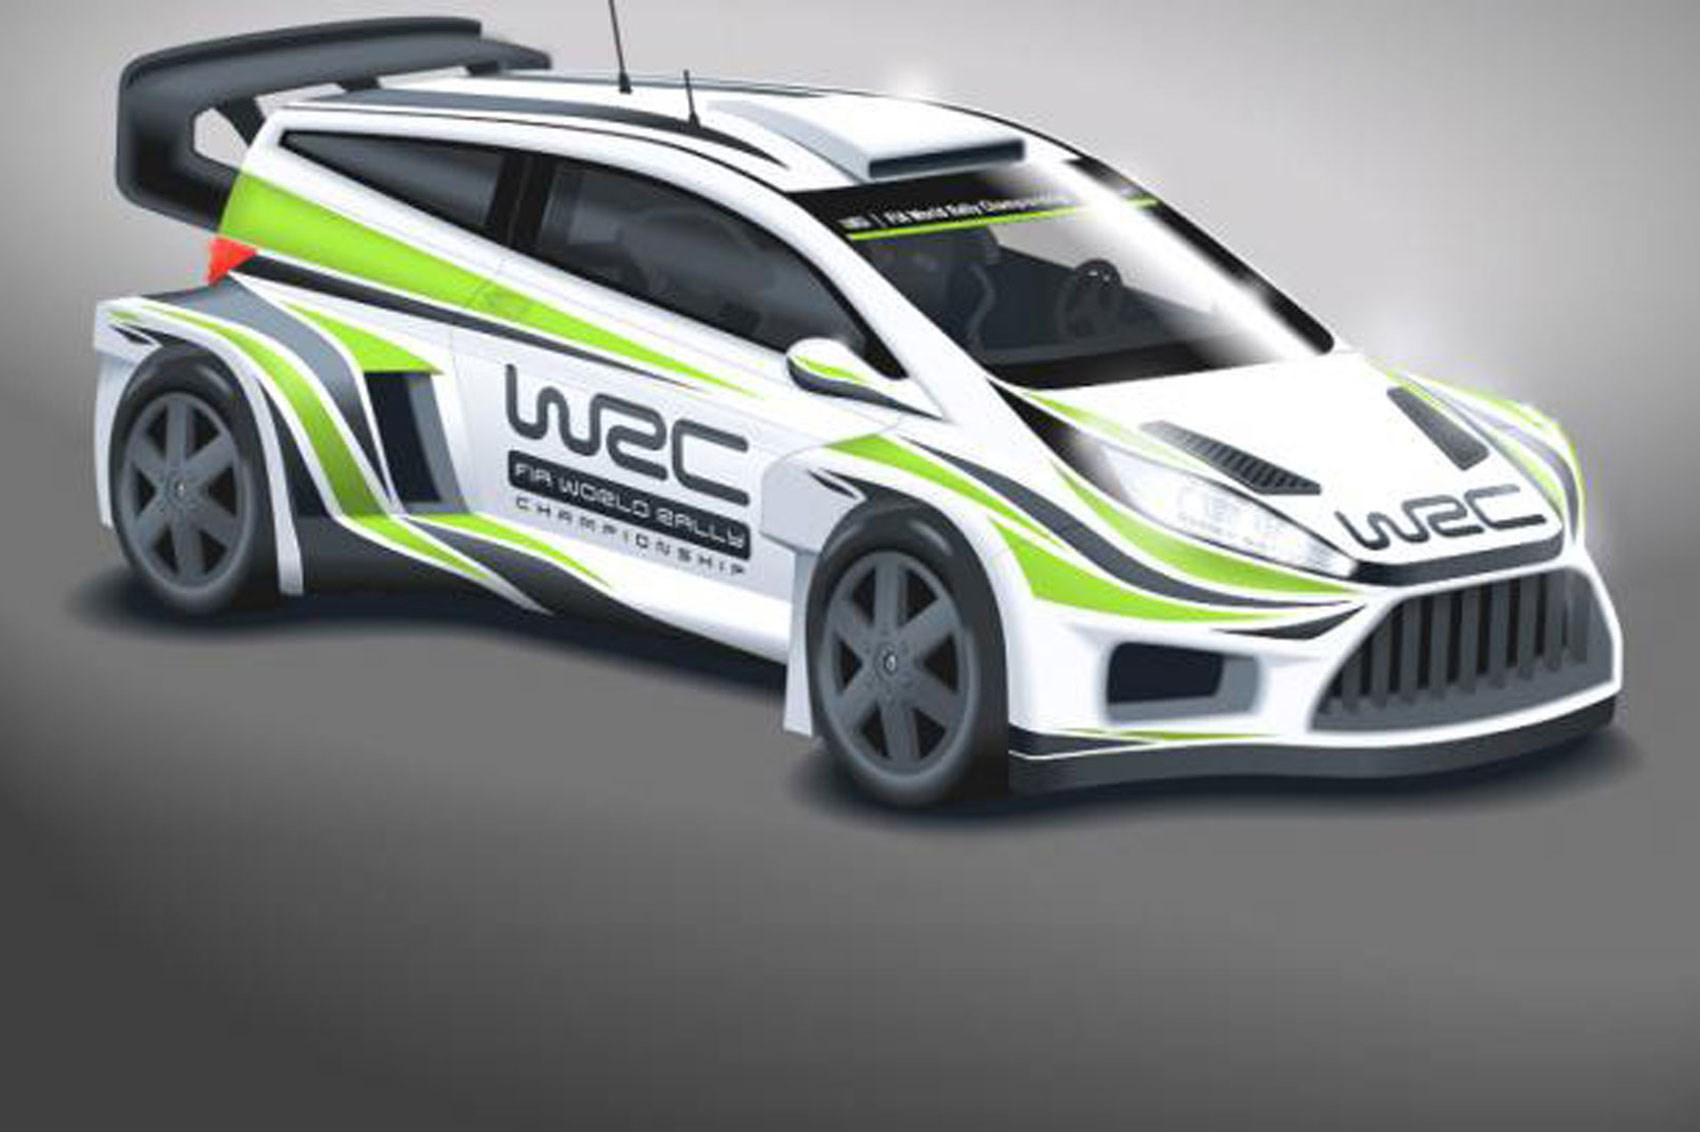 Ultrablogus  Stunning Wild New Look For Wrc Cars In  By Car Magazine With Exciting Wrc Cars Will Get Wider Bodies Bigger Wings And More Power For  With Captivating  Chevy Impala Ltz Interior Also Chevy Traverse Interior Photos In Addition Dodge Journey  Interior And  Nissan Altima Interior As Well As  Cruze Interior Additionally Ford Transit Interior From Carmagazinecouk With Ultrablogus  Exciting Wild New Look For Wrc Cars In  By Car Magazine With Captivating Wrc Cars Will Get Wider Bodies Bigger Wings And More Power For  And Stunning  Chevy Impala Ltz Interior Also Chevy Traverse Interior Photos In Addition Dodge Journey  Interior From Carmagazinecouk